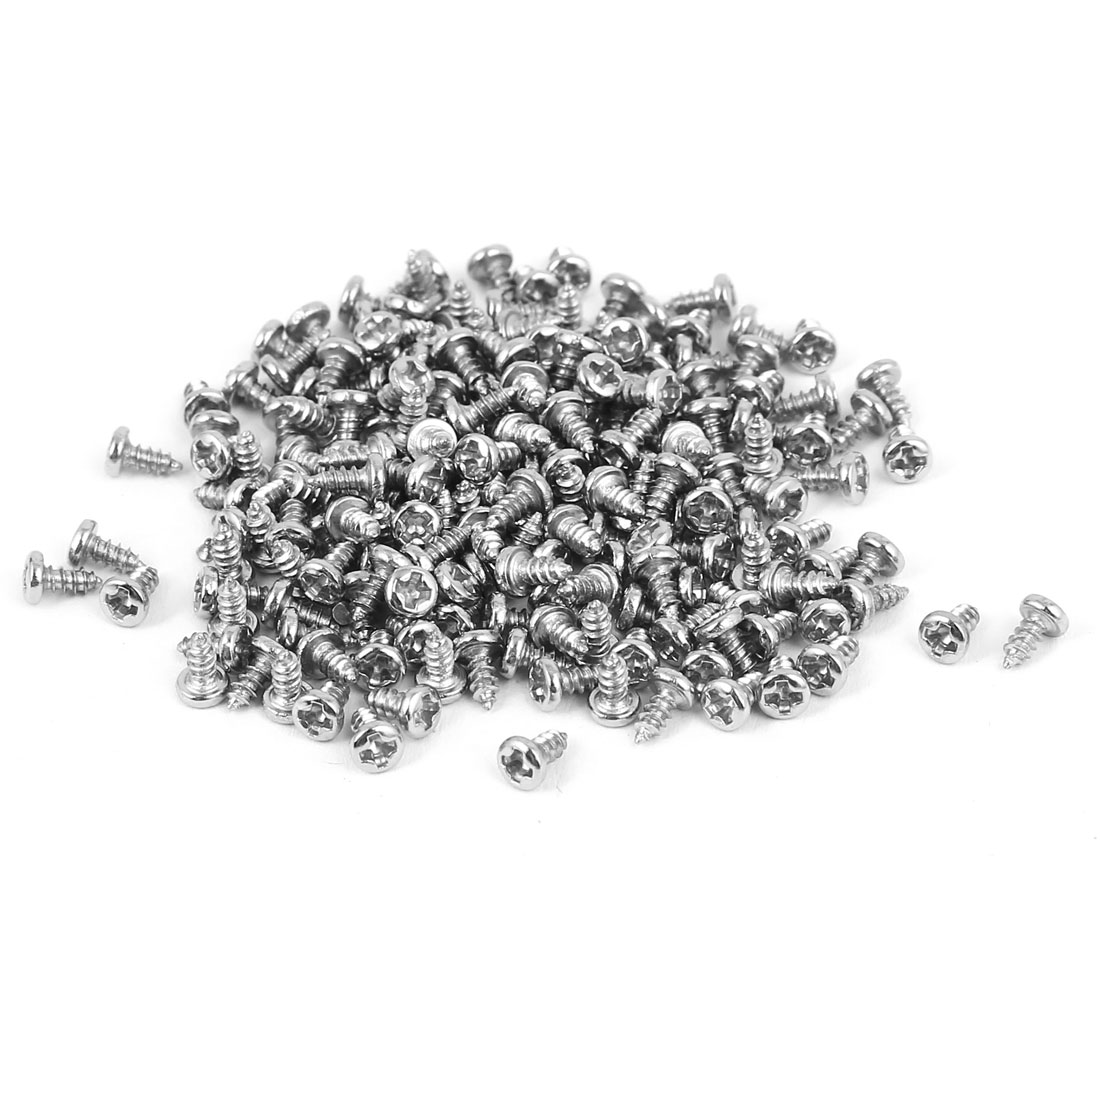 M1.7x4mm Thread Nickel Plated Phillips Round Head Self Tapping Screws 200pcs